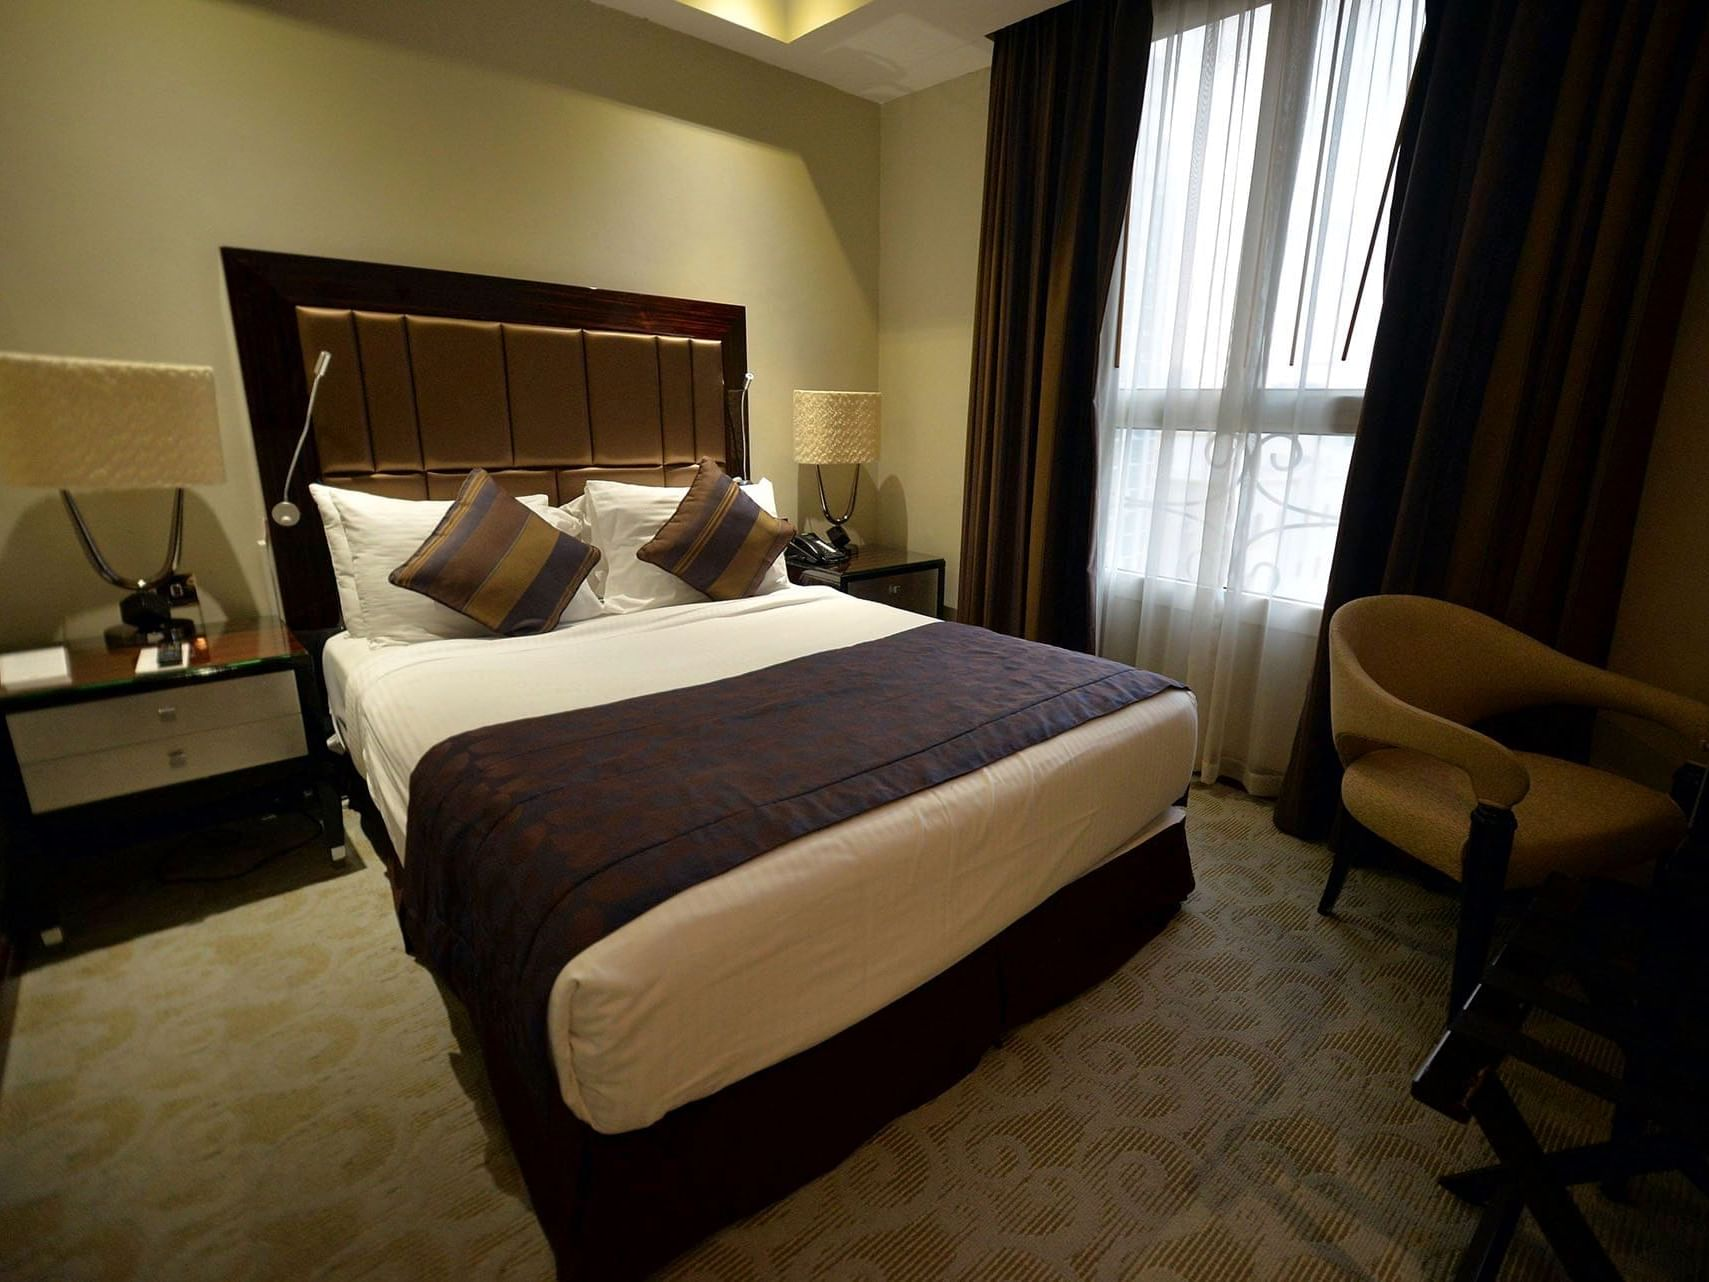 Standard Room Queen at Strato Hotel by Warwick